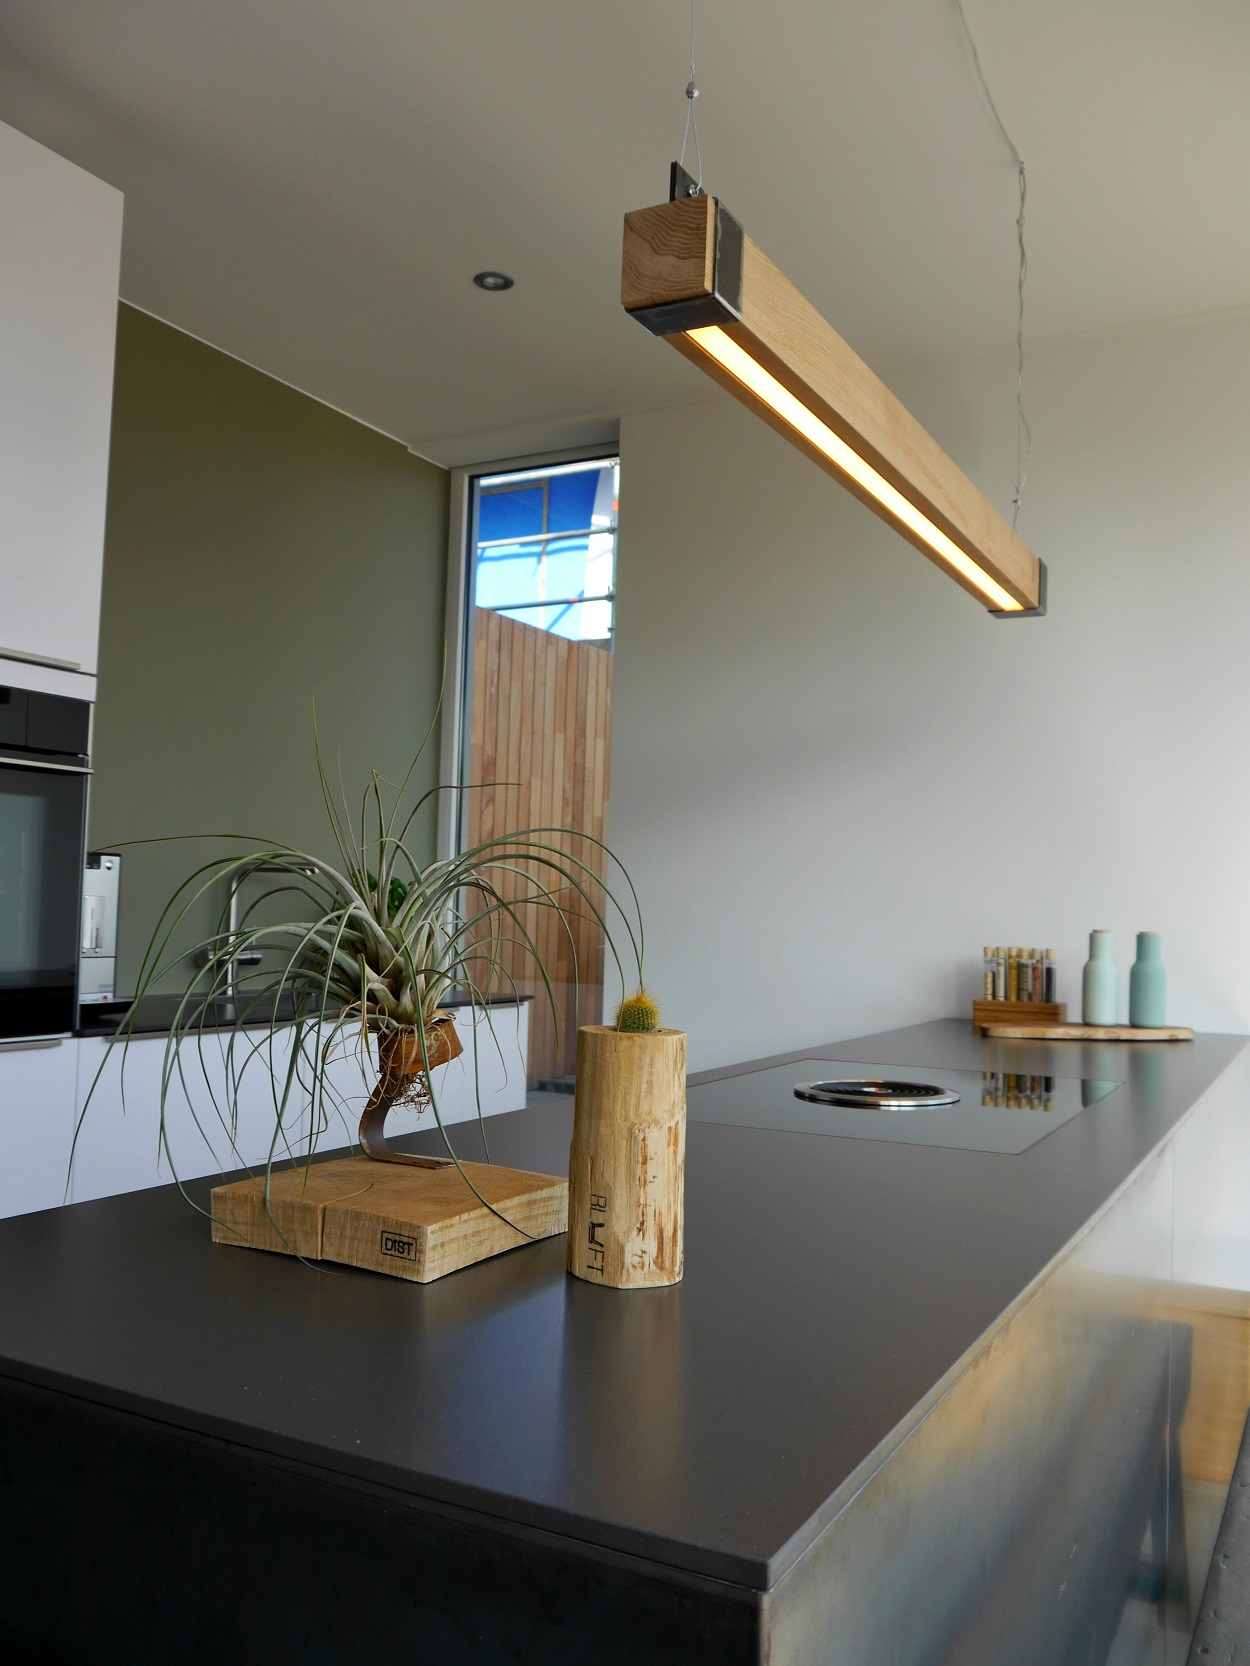 Hanglamp Led Design Houten Balklamp Woodlight New Indusigns